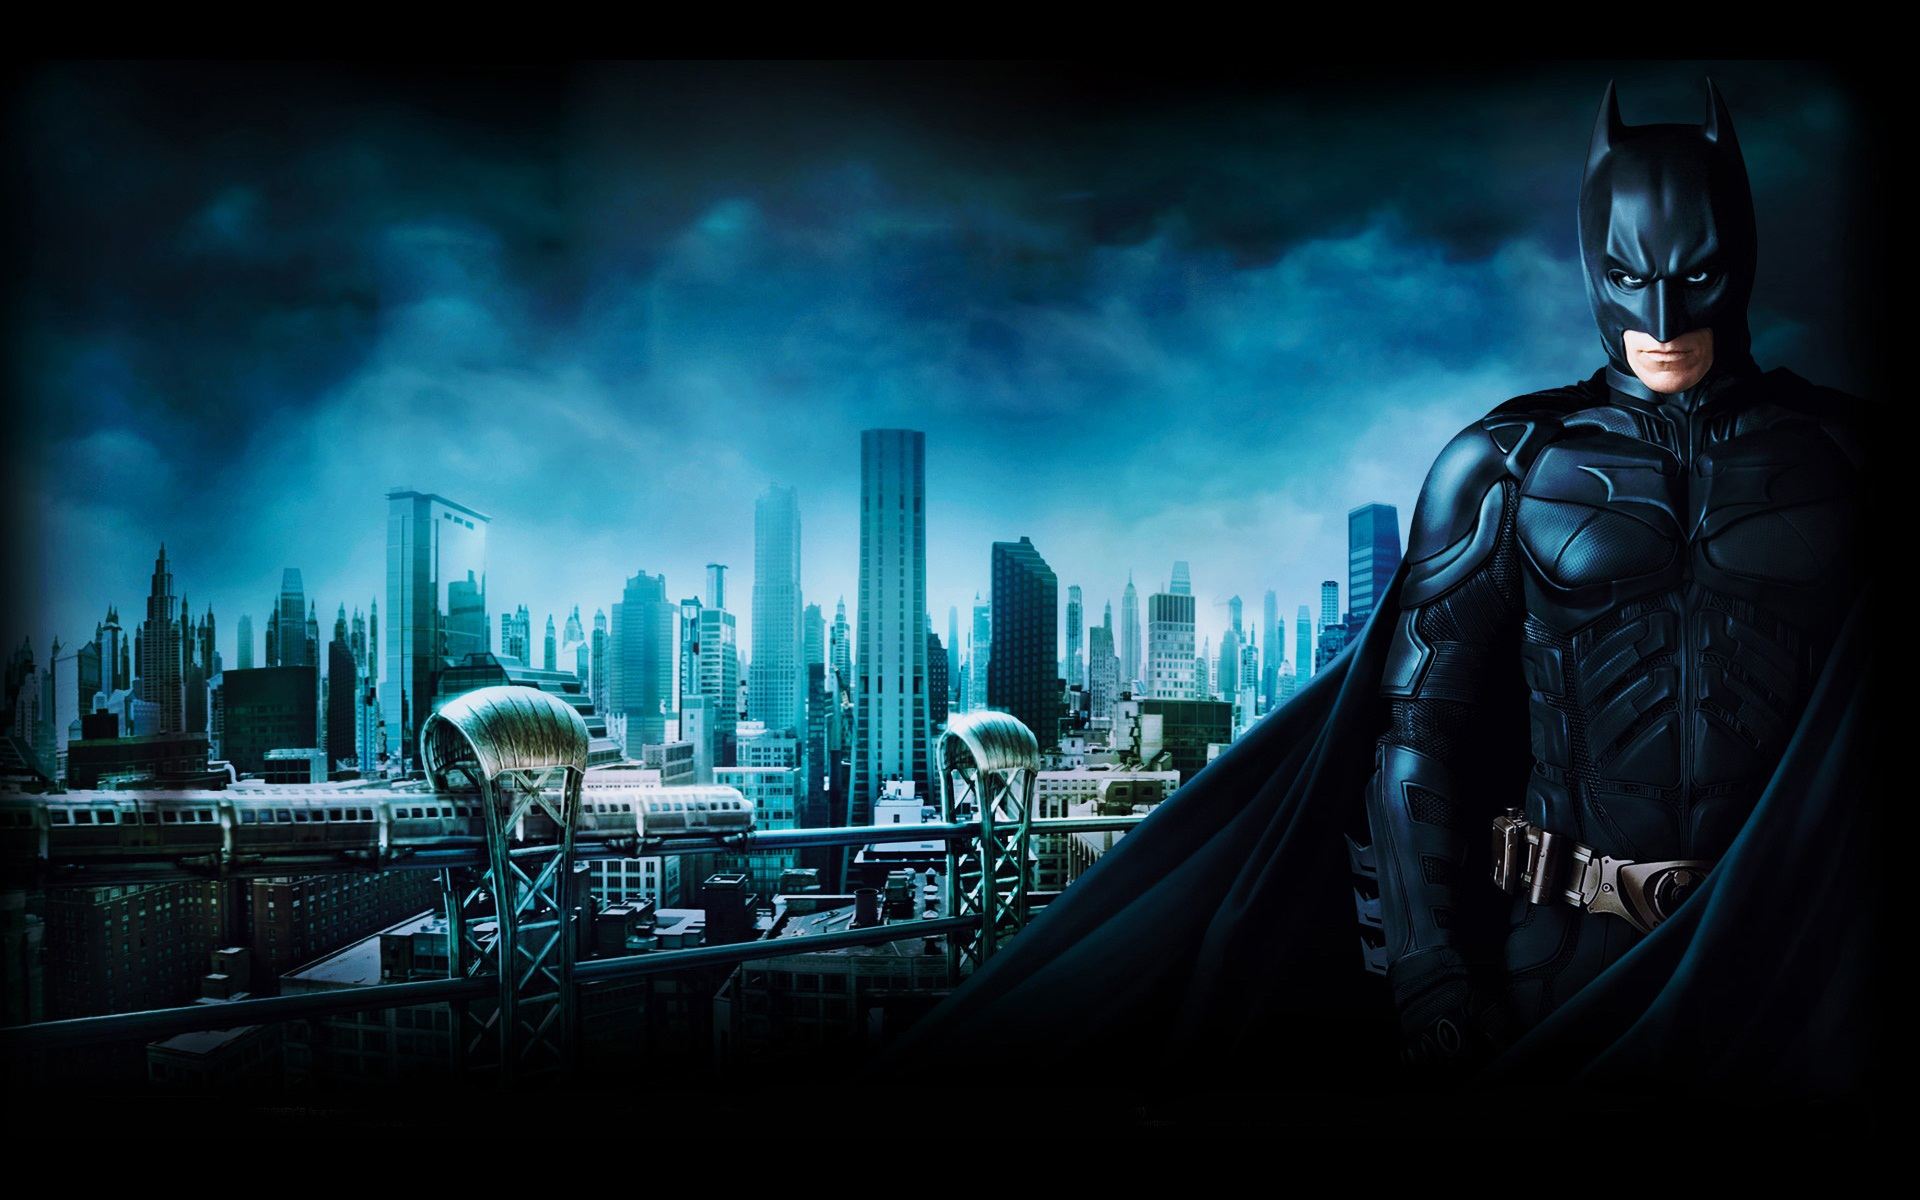 Batman Wallpaper HD download free | PixelsTalk Net